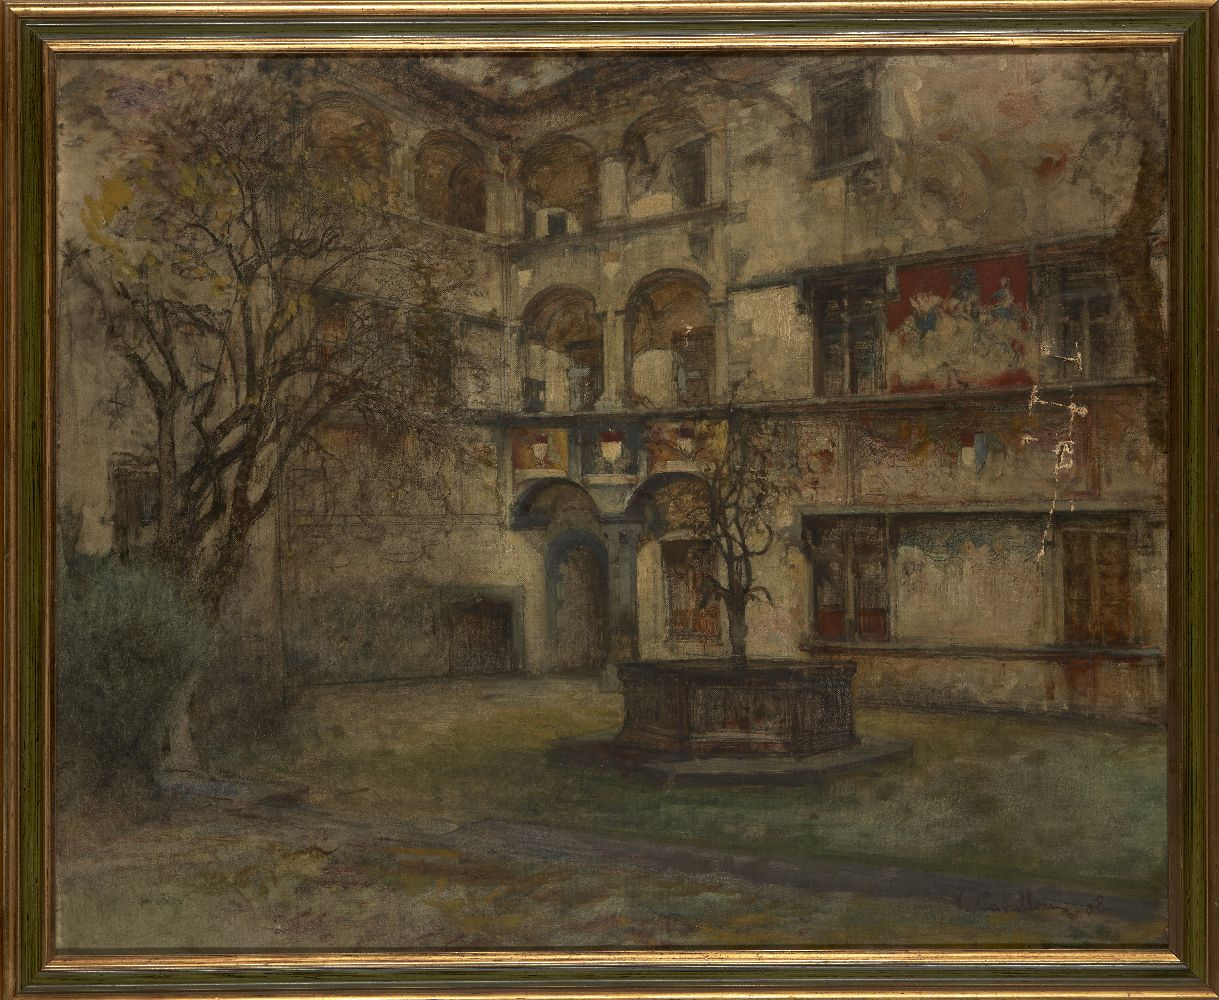 Vittorio Cavalleri, Italian 1860-1938- View of a courtyard; oil on canvas, signed and dated 08, - Image 2 of 3